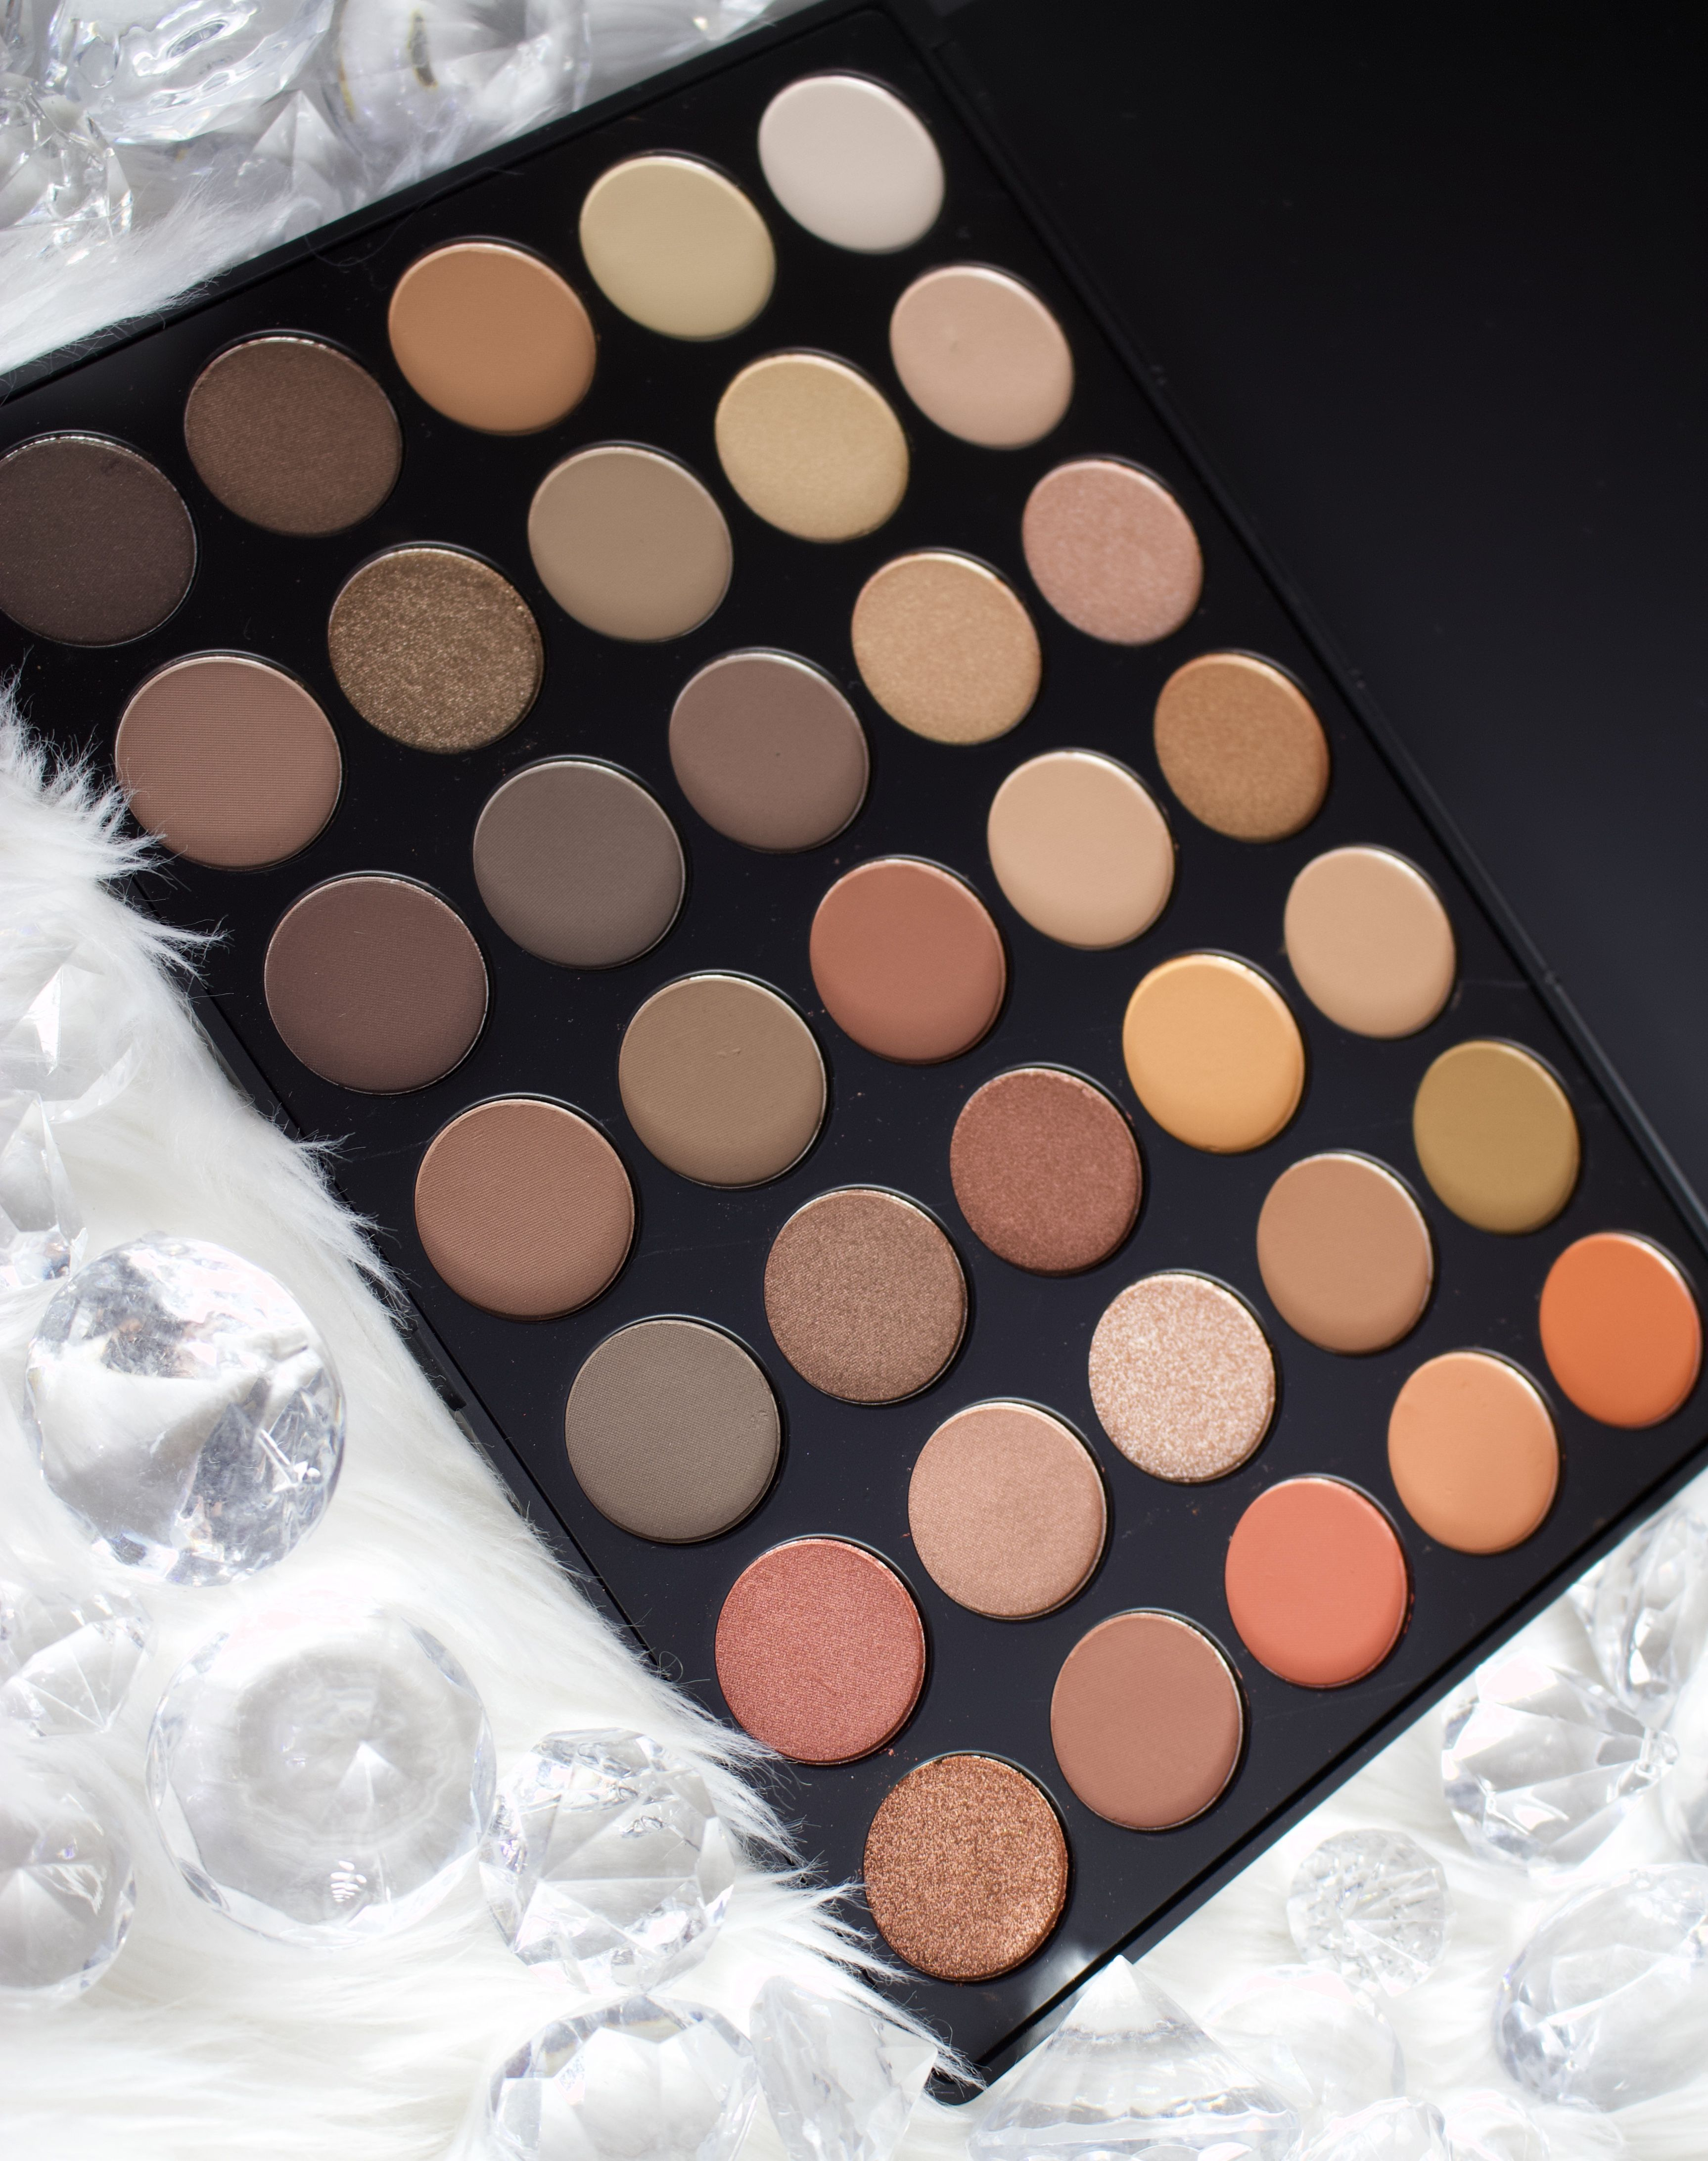 NARS Ignited Eyeshadow Palette Review + Swatches I